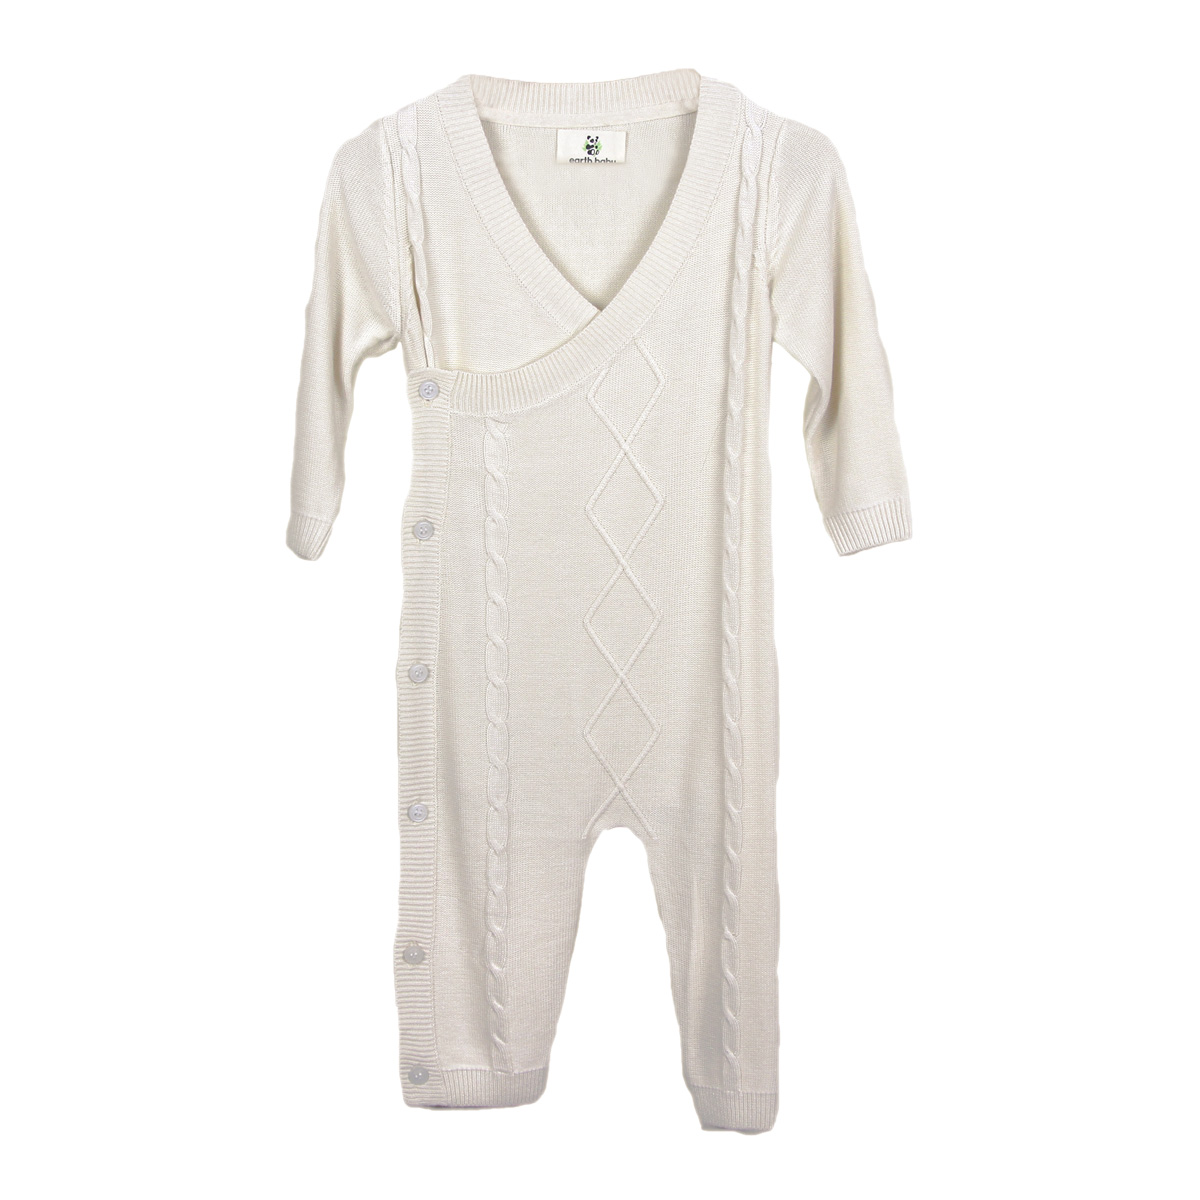 087750f1348c earth baby OUTFITTERS Knit Bamboo Classic Romper - TheTot